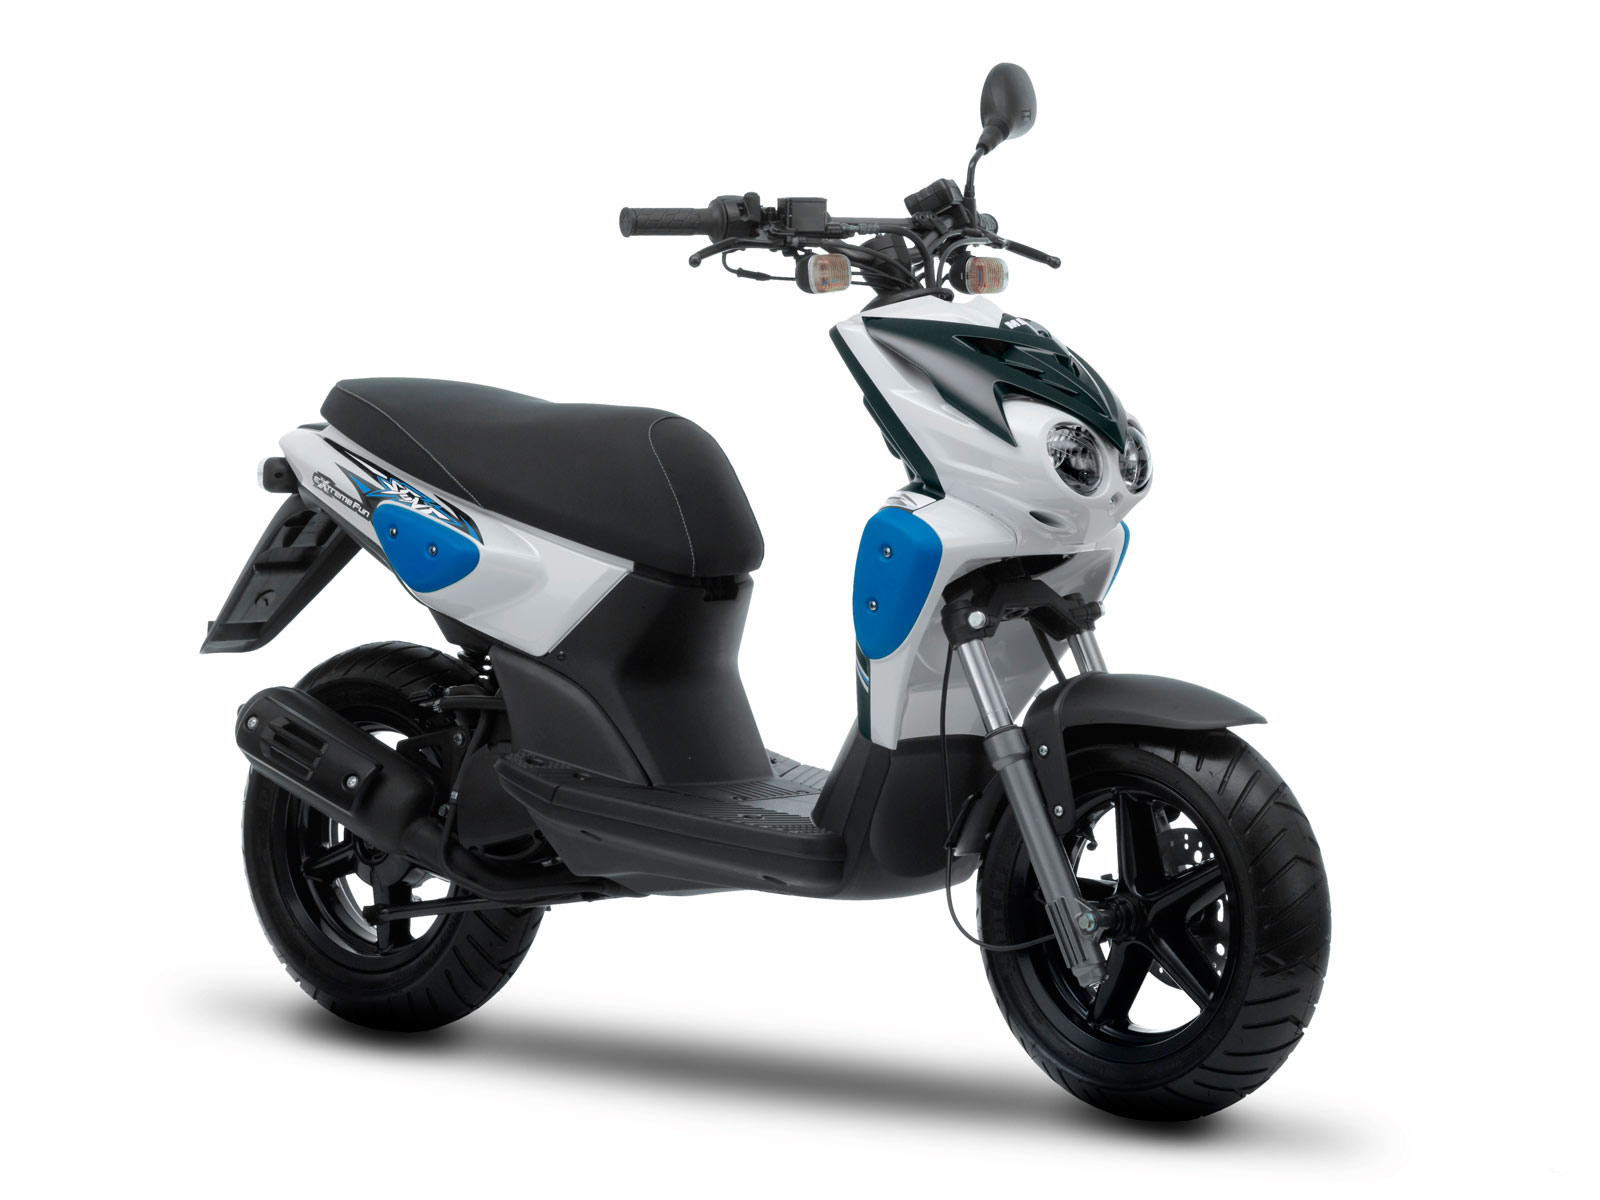 2007 YAMAHA BWs Scooter accident lawyers. Pictures, specs